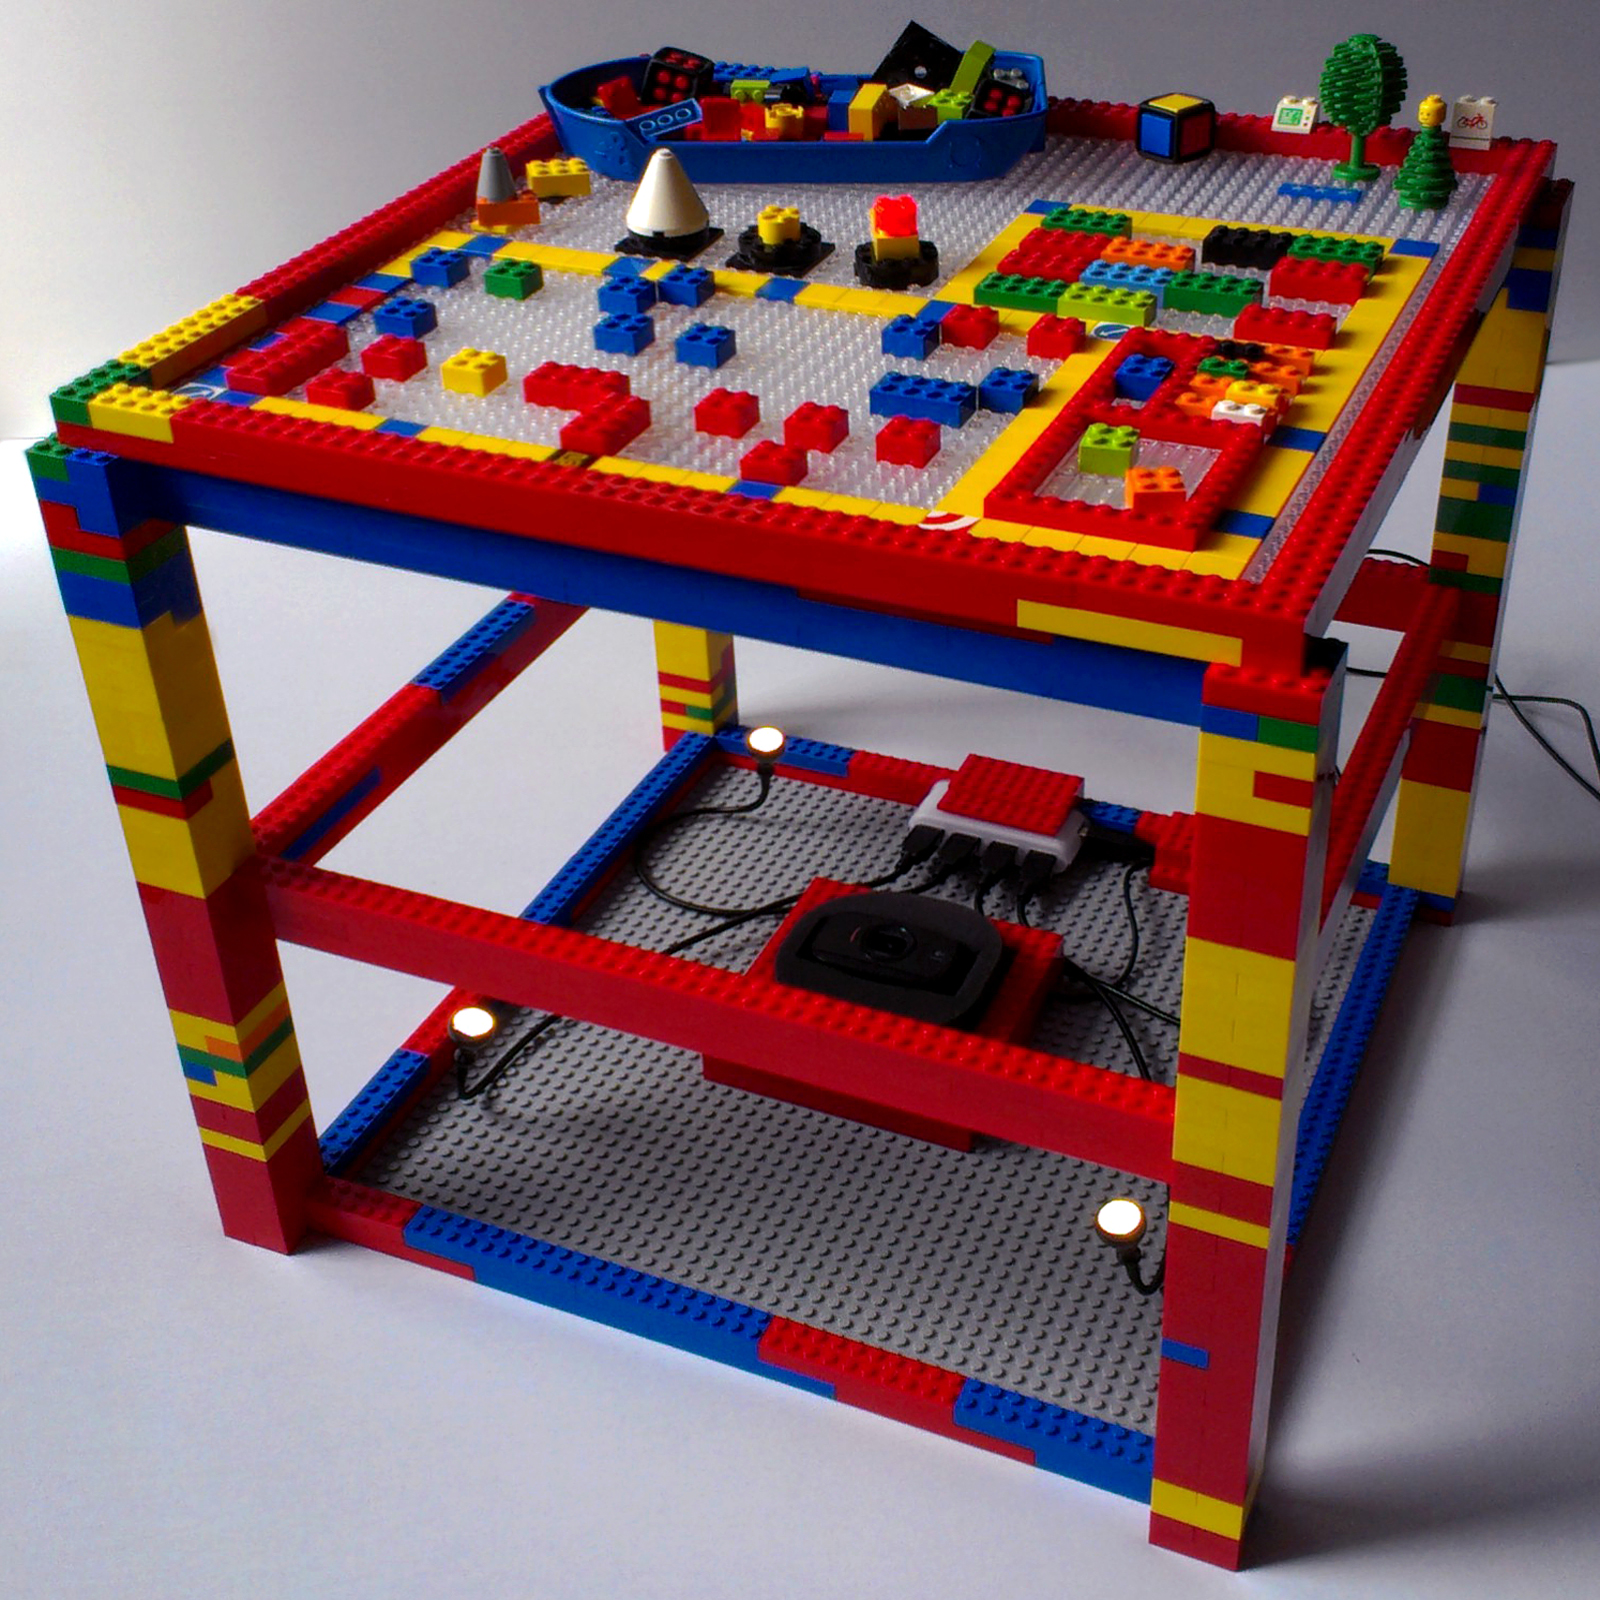 LEGOTECHNO_TEI_2015_Lego_Sequencer_Gohlke